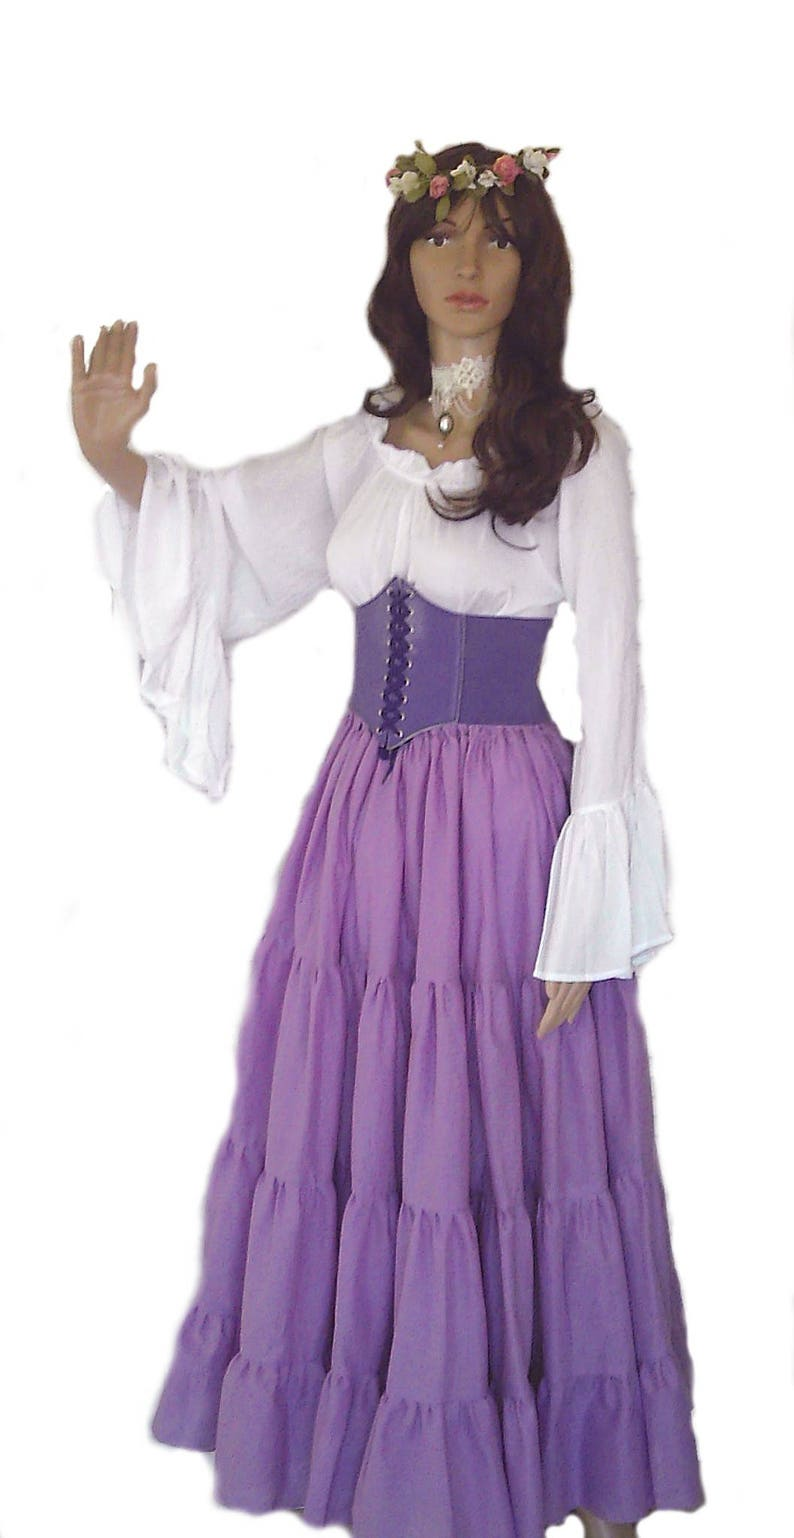 2e9e1c2d7e2 Renaissance Dress Pirate Gypsy Chemise Outfit Purple Waist